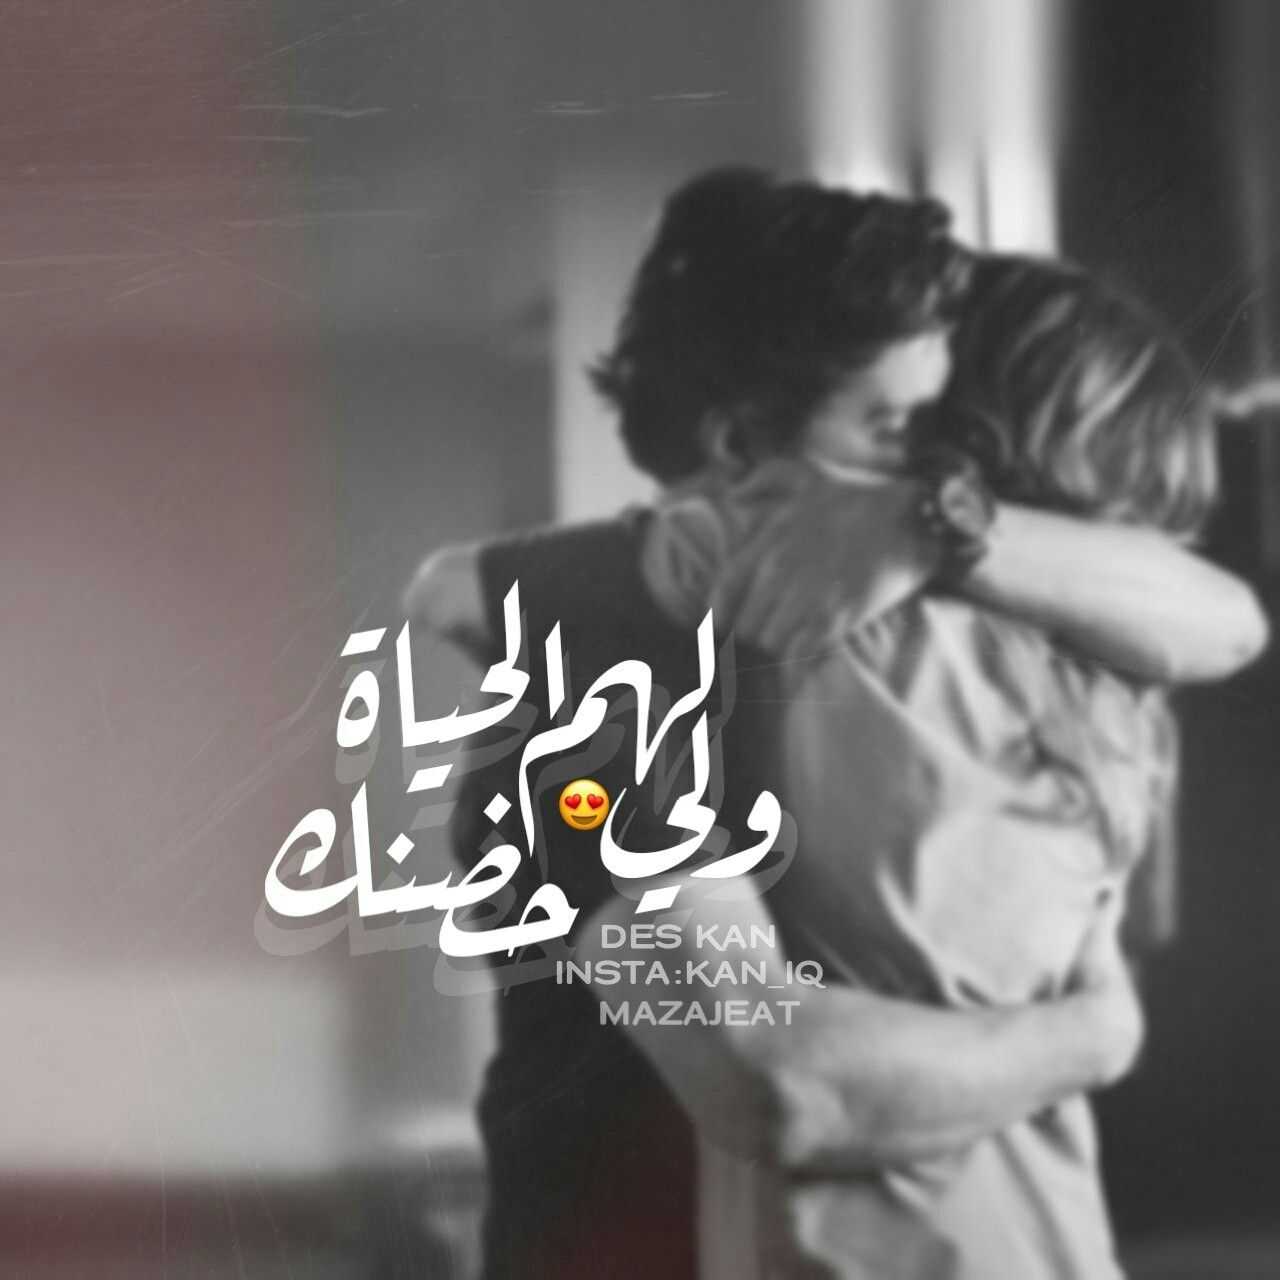 Pin By Anood Said On اشعار عراقية Love Words Beautiful Arabic Words Romantic Love Images